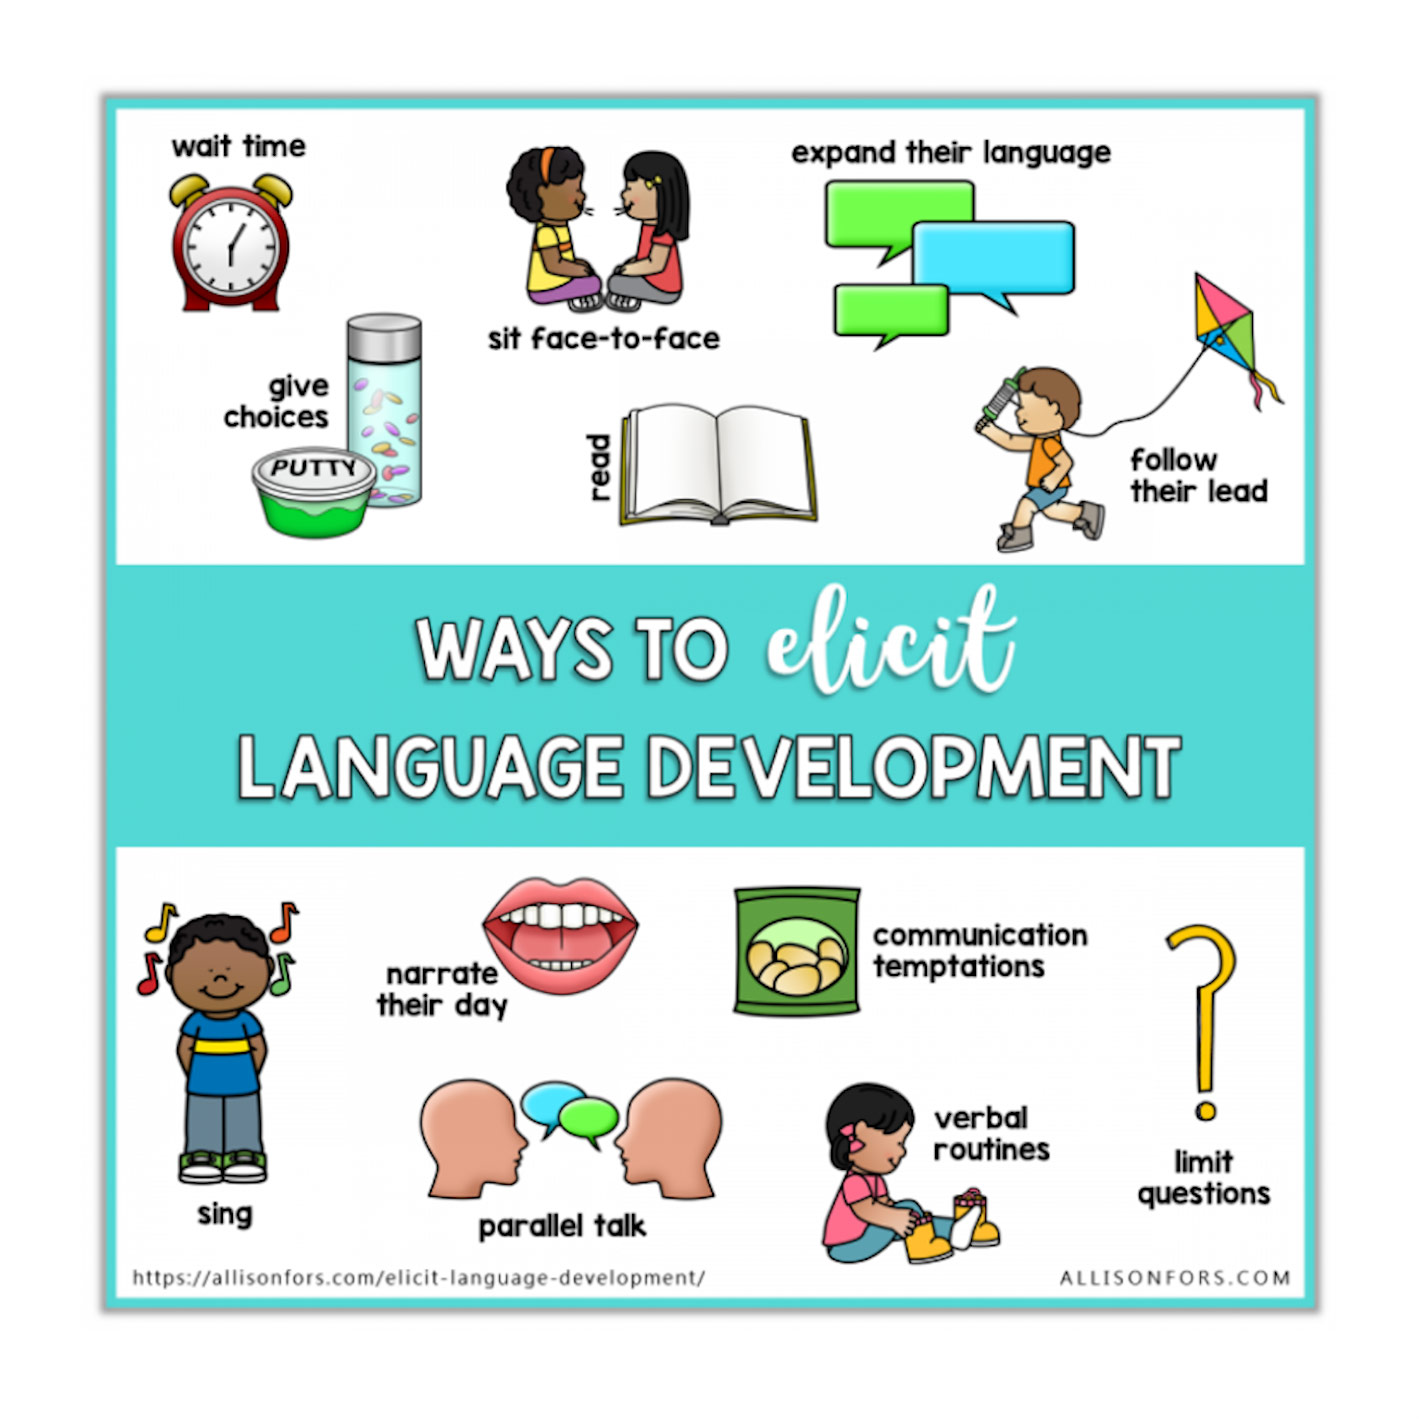 An educational infographic about ways to elicit language development